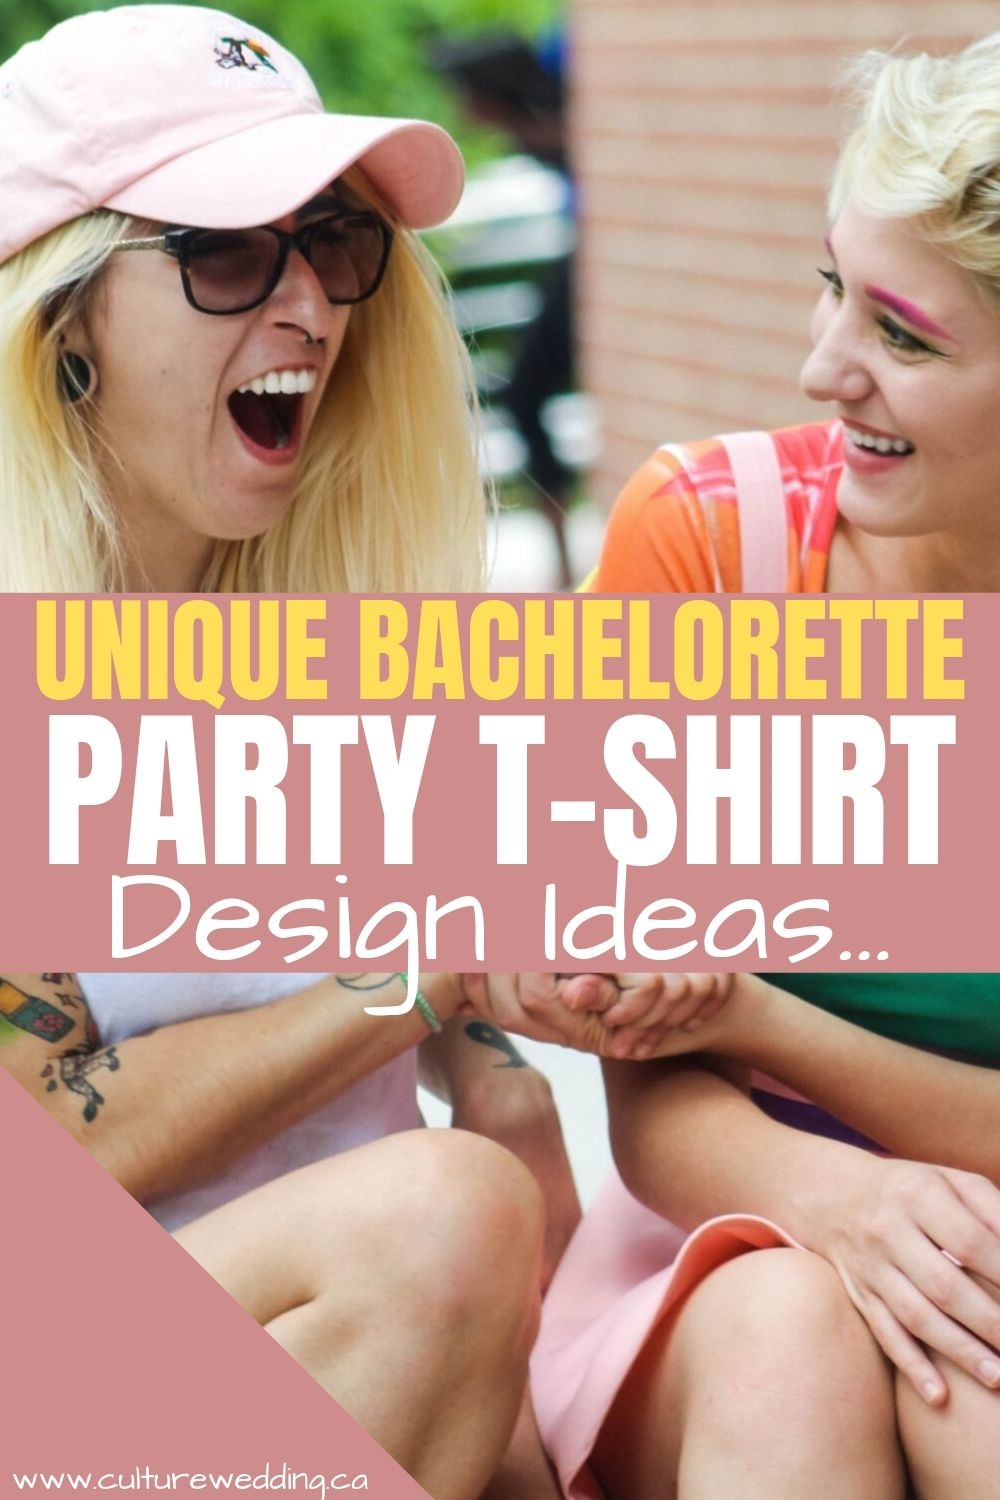 Are you looking for some bachelorette party shirts for an event your are planning? These Bachelorette shirts are funny and great for those planning a unique bachelorette party. Grab these bachelorette shirts for your bridal party #bachelorette #bridalparty #bacheloretteparty